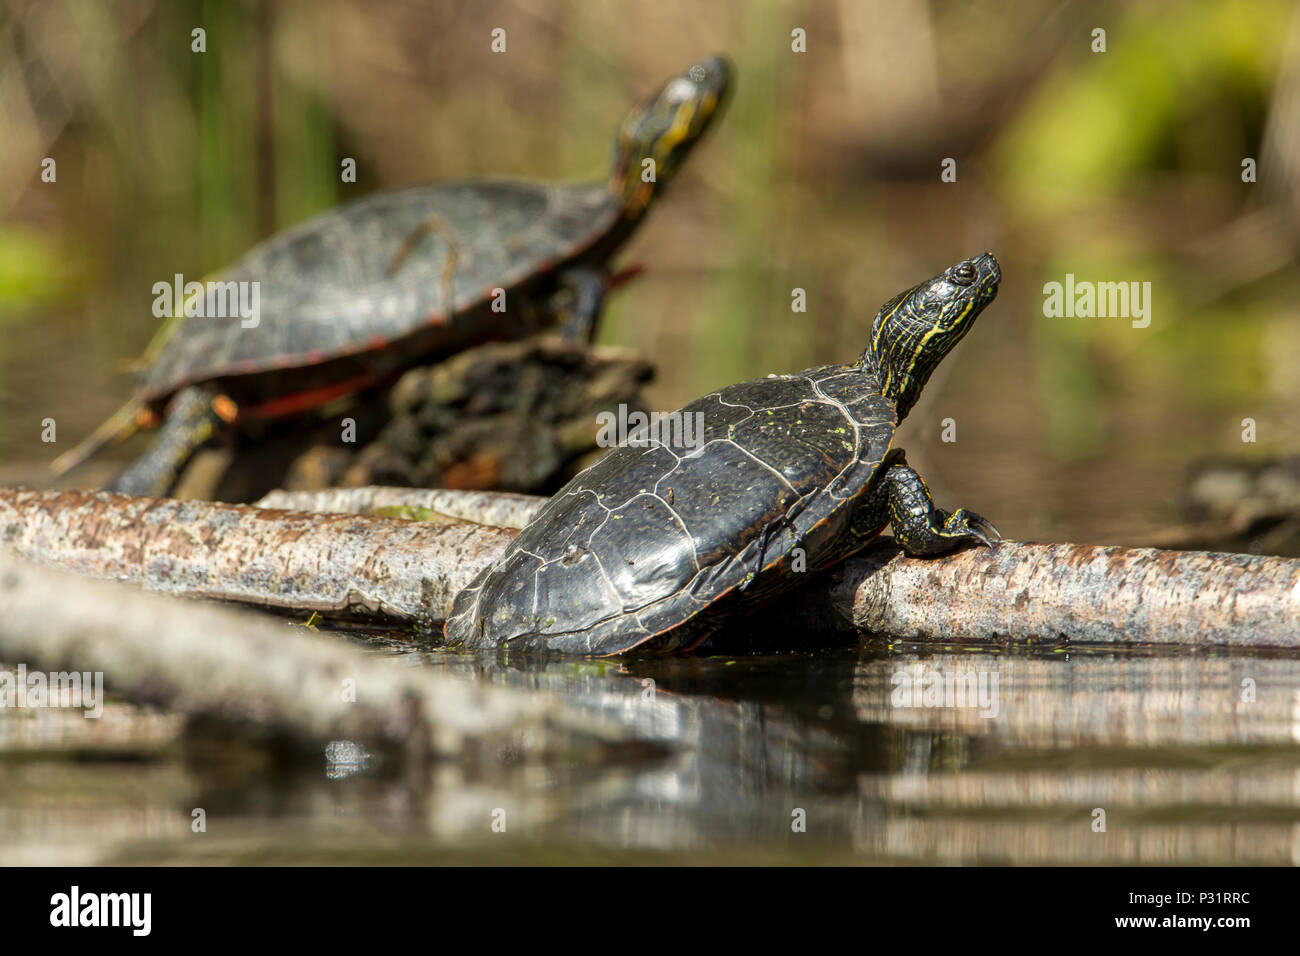 Two America Painted turtles (chrysemys picta) bask in the sun on a log on Fernan Lake in Idaho. - Stock Image